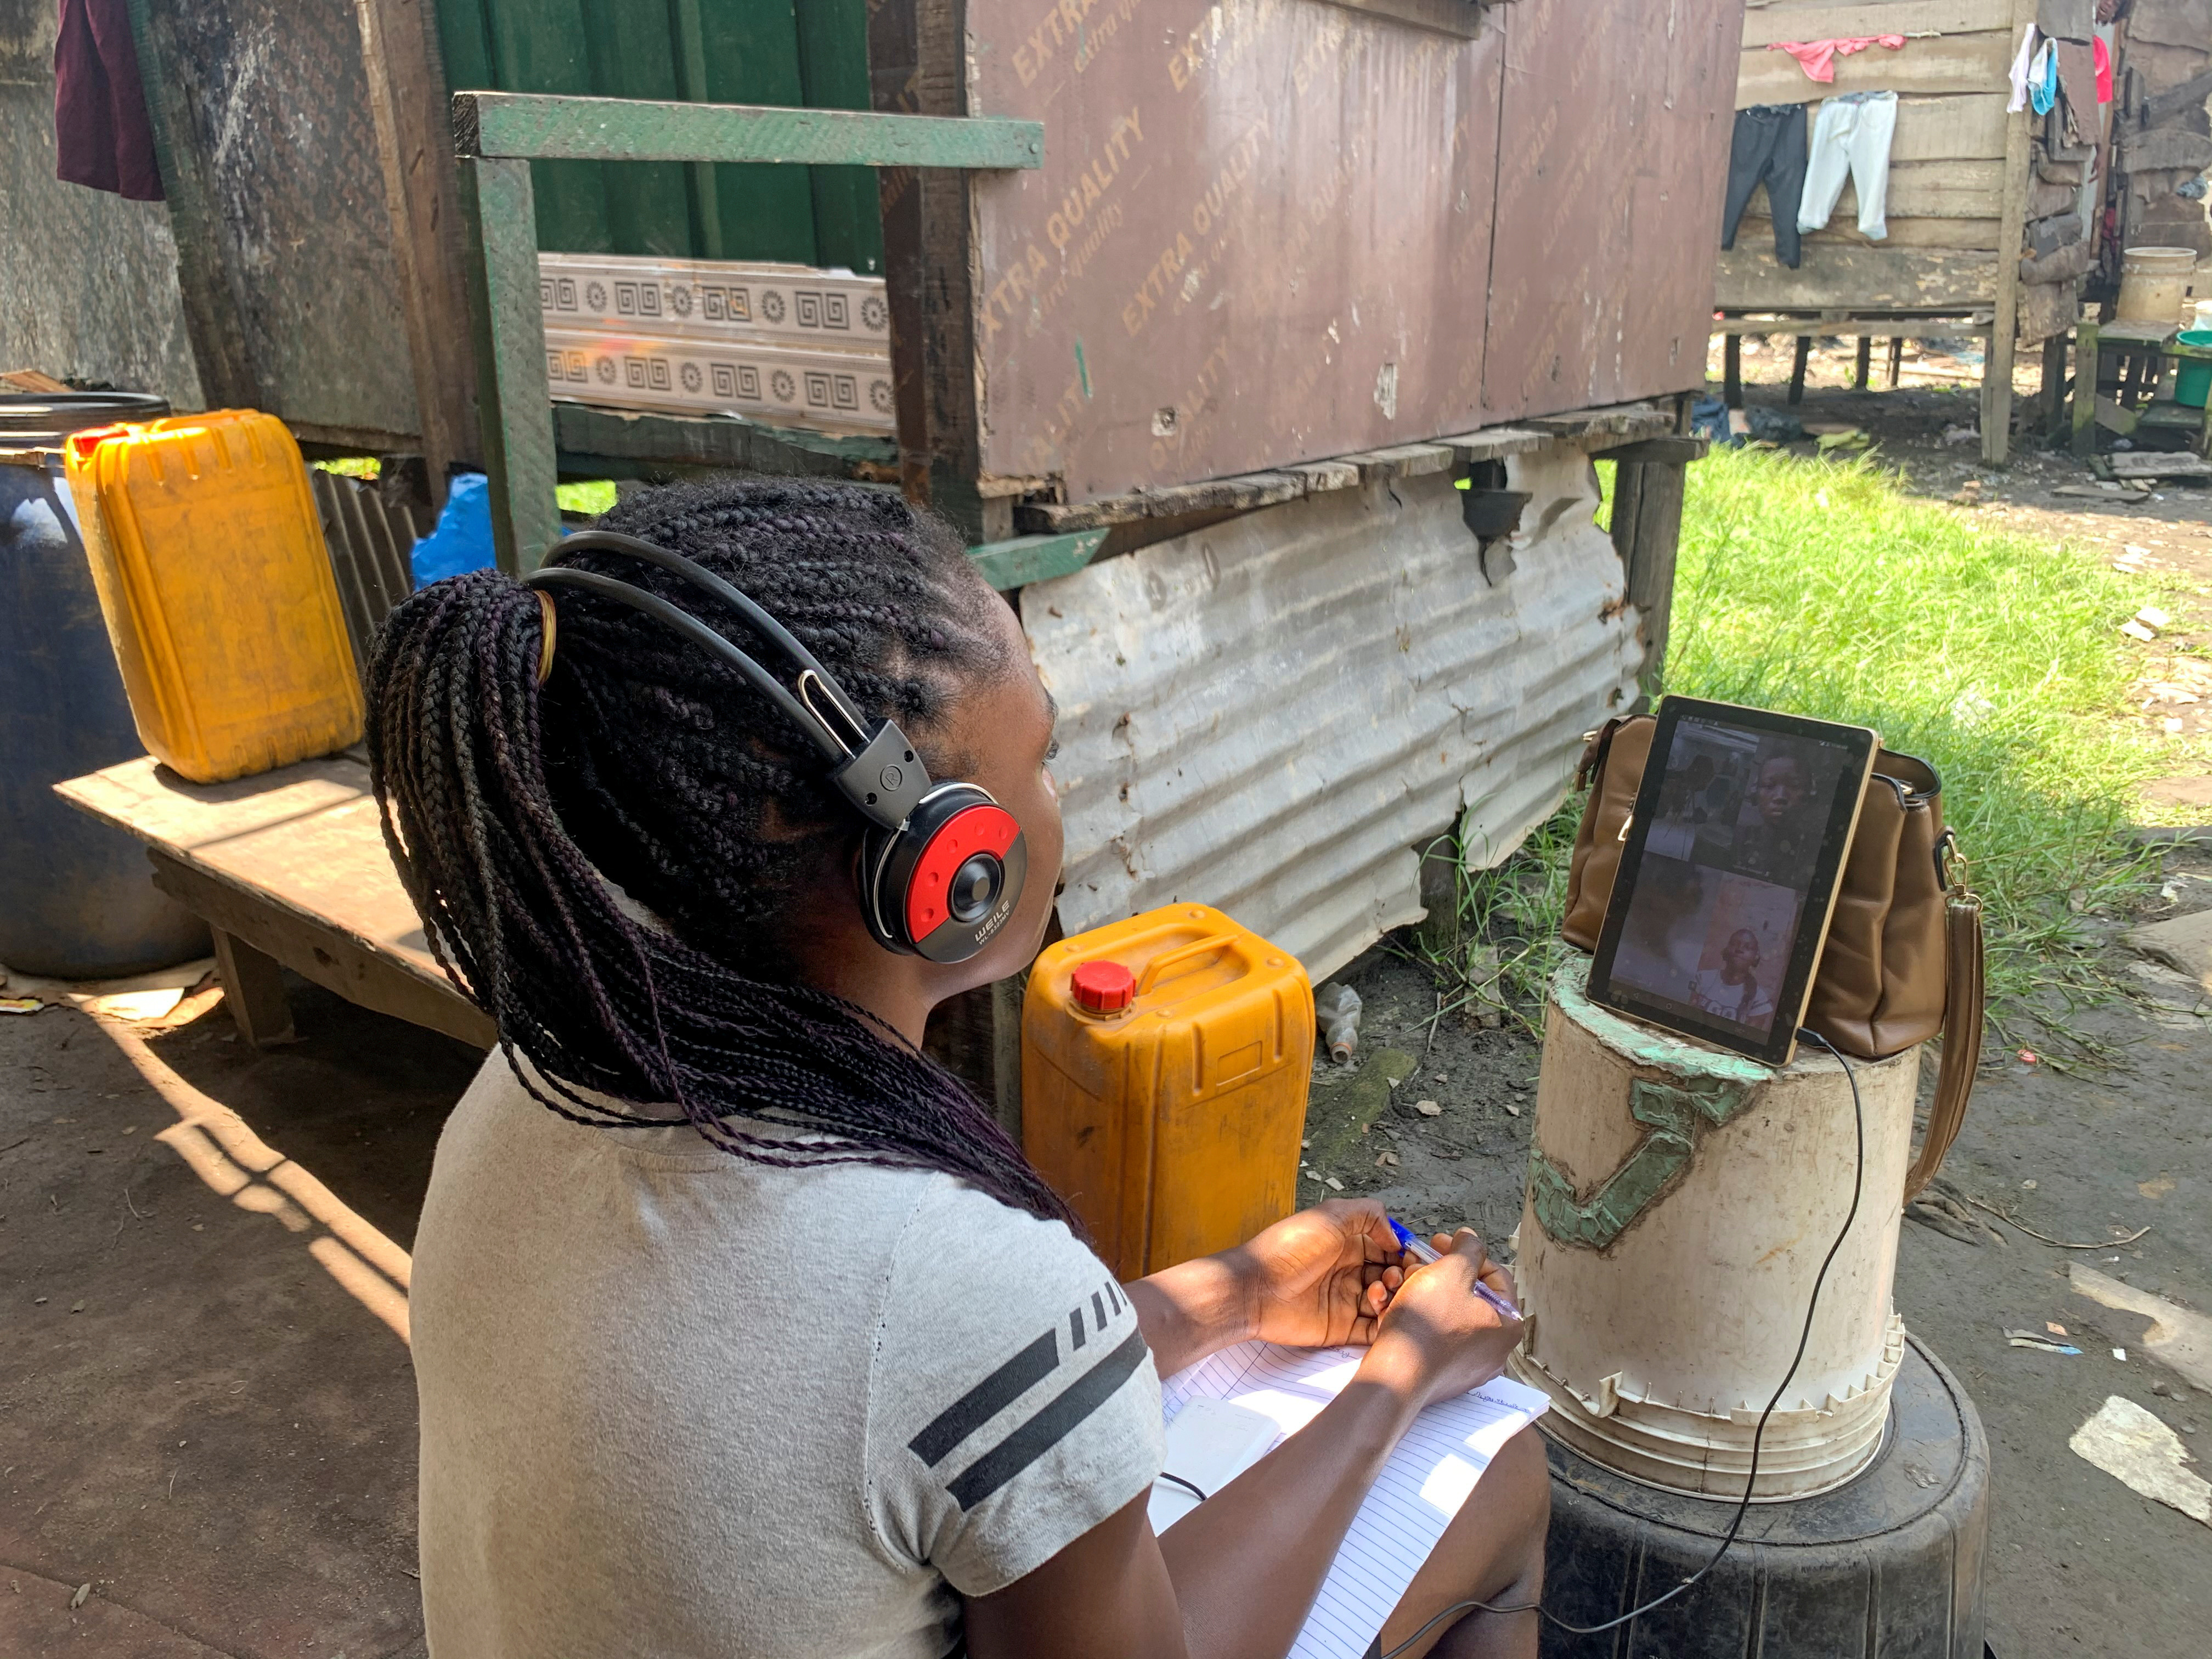 Esther Ikechukwu, a beneficiary of Slum2School project, attends a virtual class from her home in Makoko, Lagos, Nigeria August 19, 2020. Picture taken August 19, 2020. REUTERS/Nneka Chile - RC2XUI9K1Q07